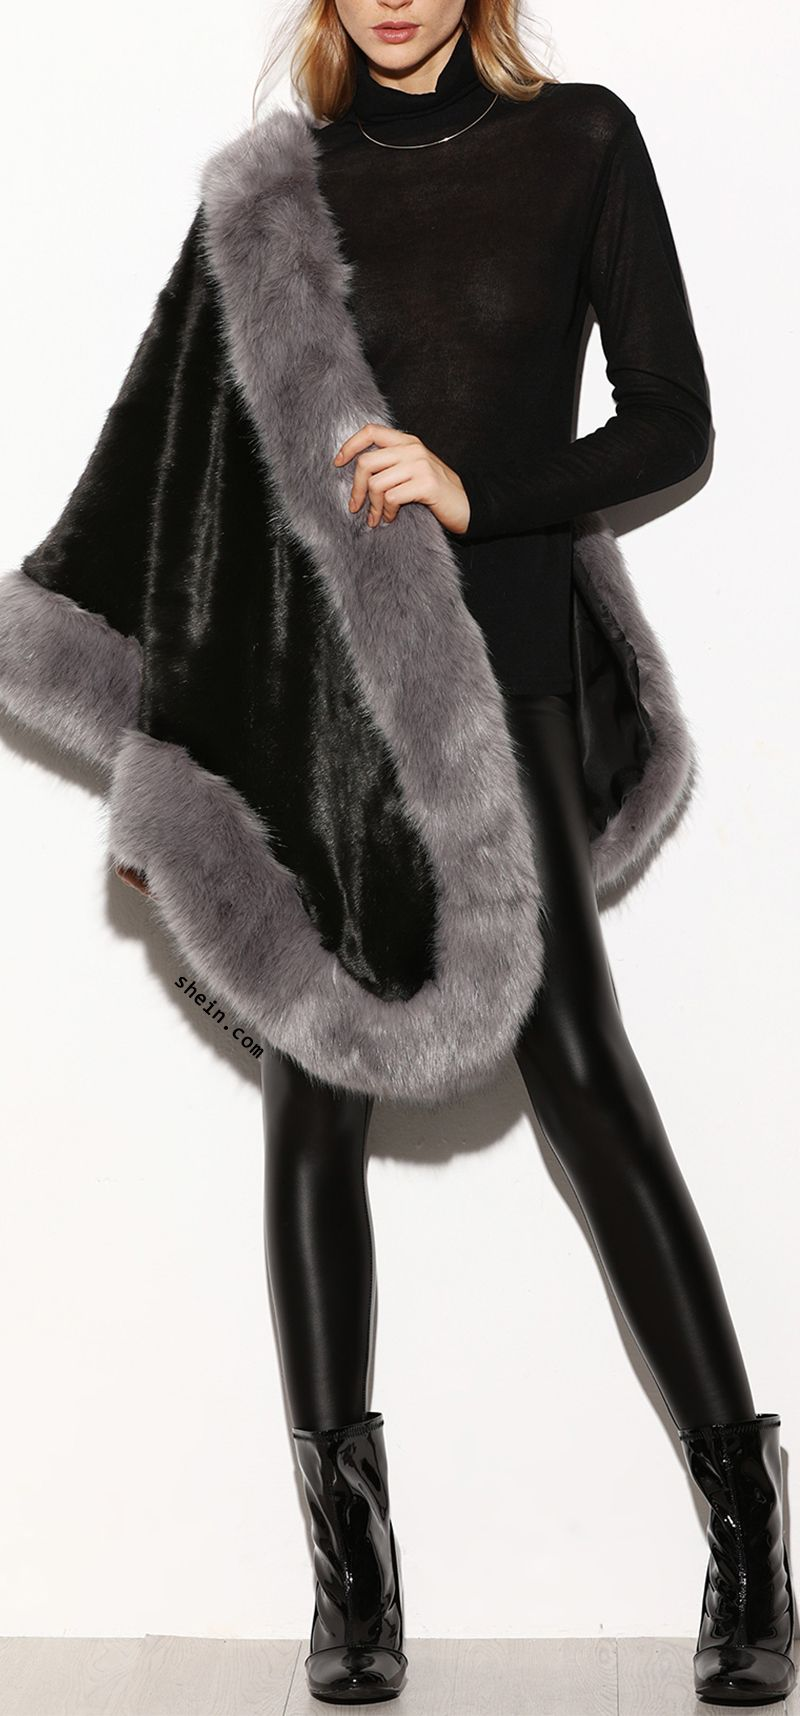 Luxury style-Faux Fur Poncho Coat.